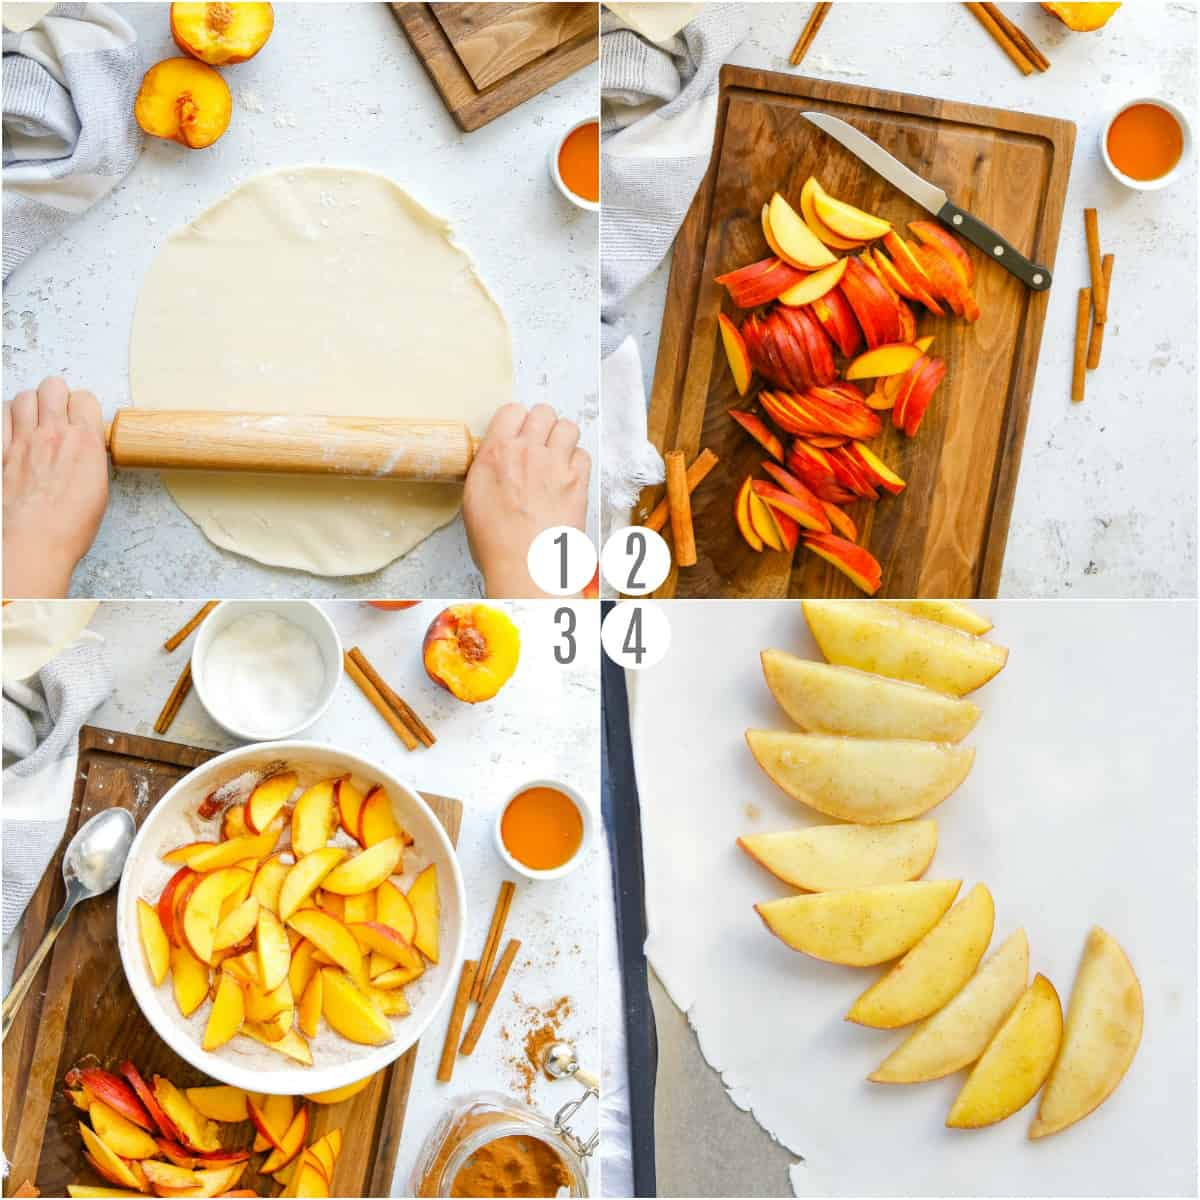 Step by step photos showing how to prepare a peach galette recipe.